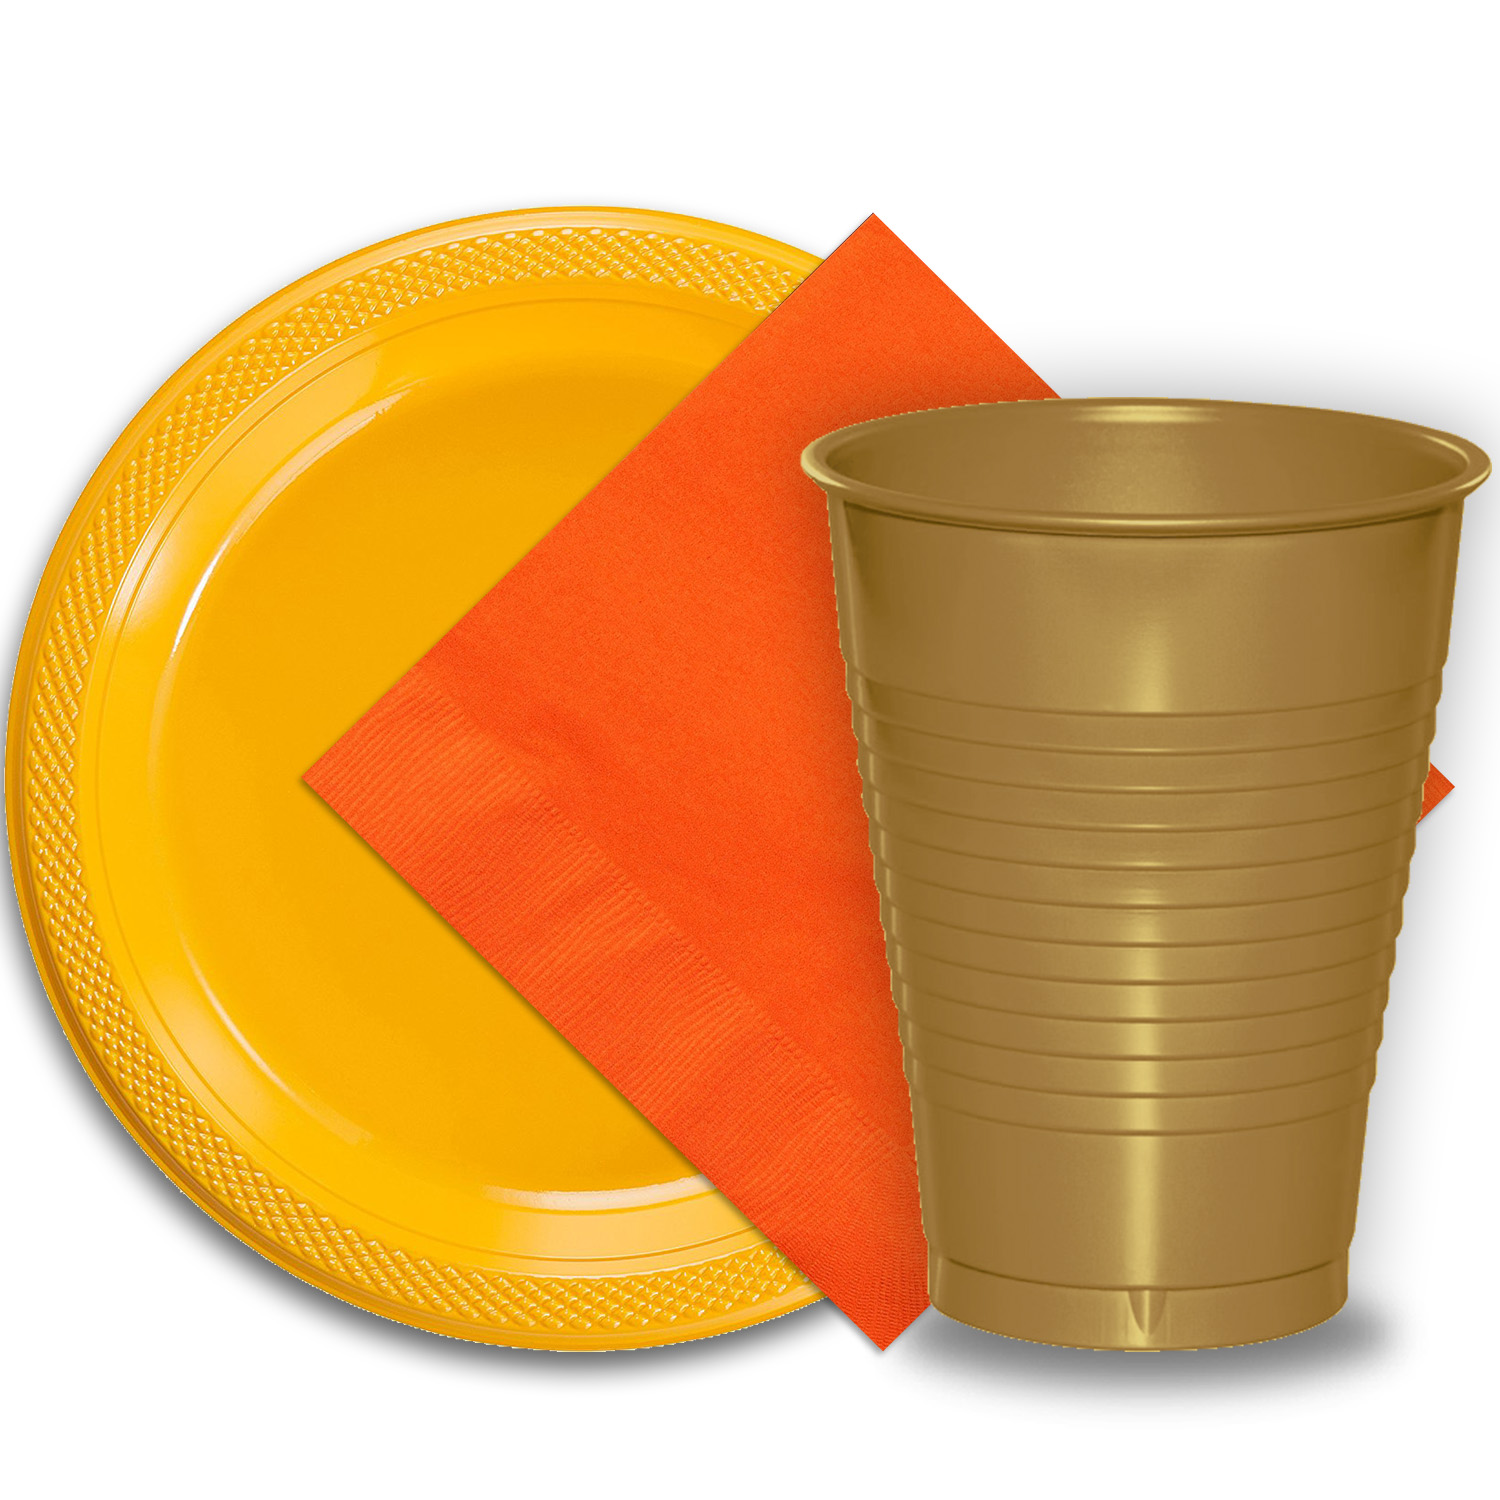 """50 Yellow Plastic Plates (9""""), 50 Gold Plastic Cups (12 oz.), and 50 Orange Paper Napkins, Dazzelling Colored Disposable Party Supplies Tableware Set for Fifty Guests."""